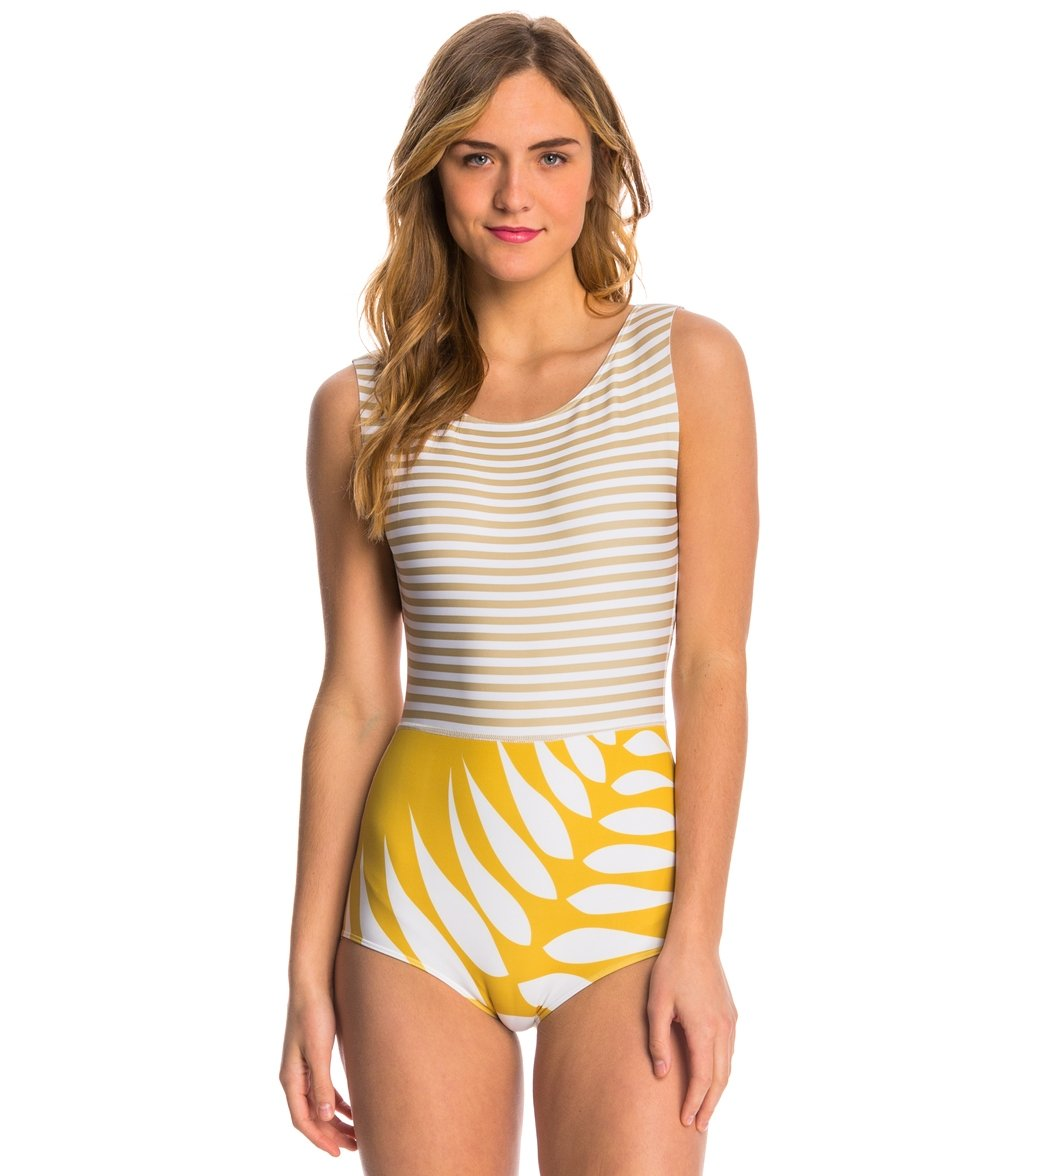 497b0379cab96 Seea Gold Leaf Lido One Piece Swimsuit at SwimOutlet.com - Free ...